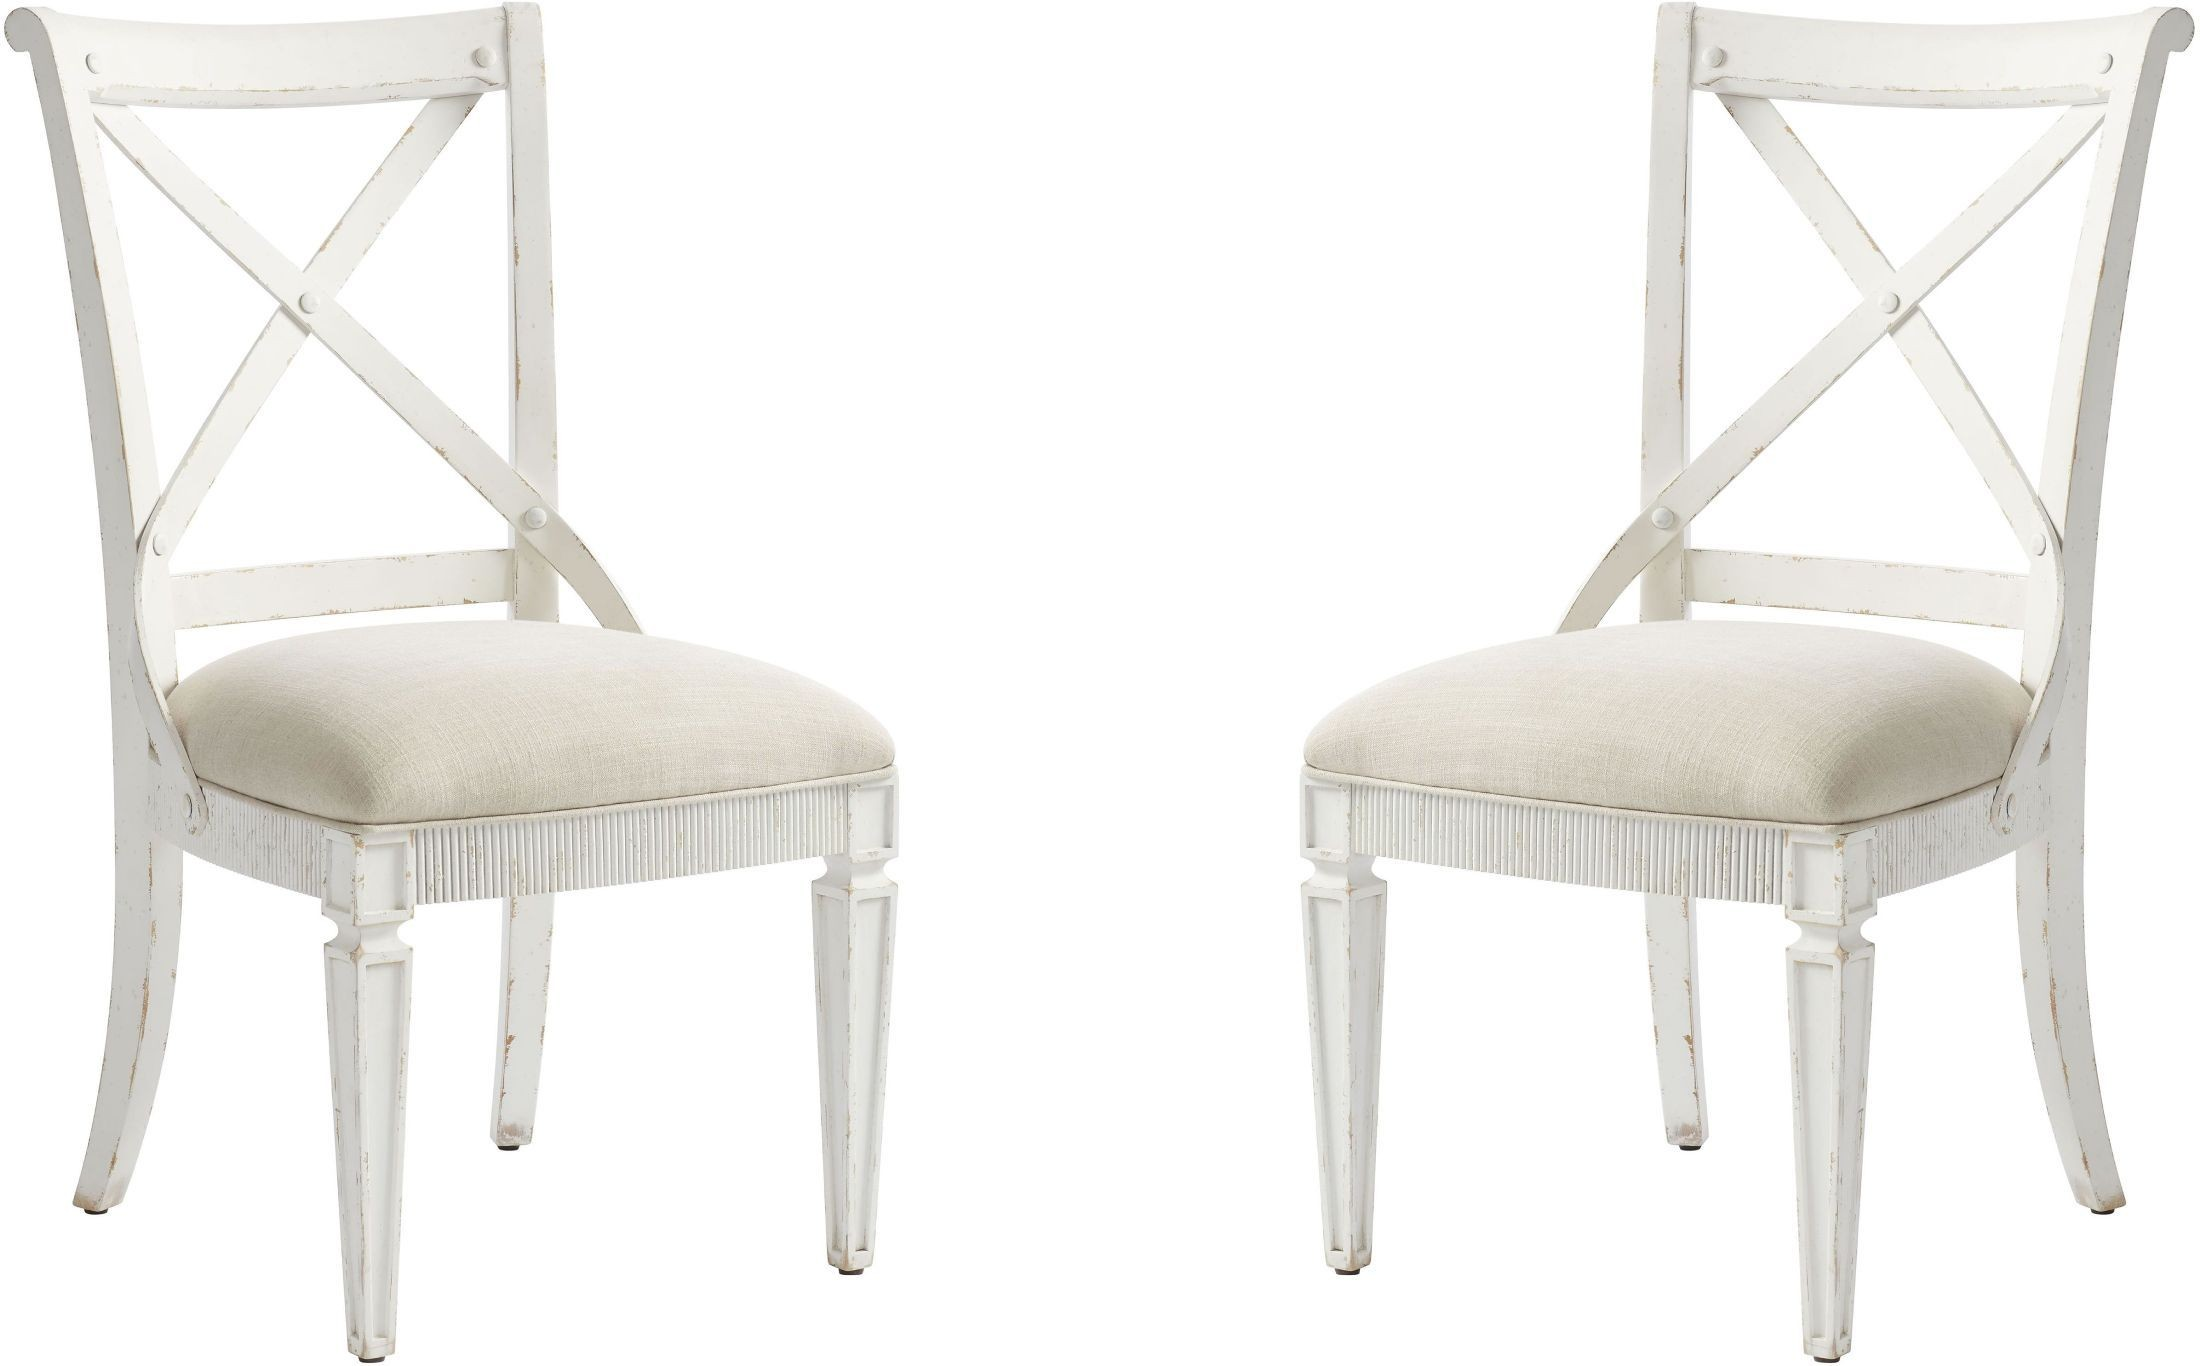 juniper dell 17th century white side chair set of 2 from Sofa Chair clay leather armchair